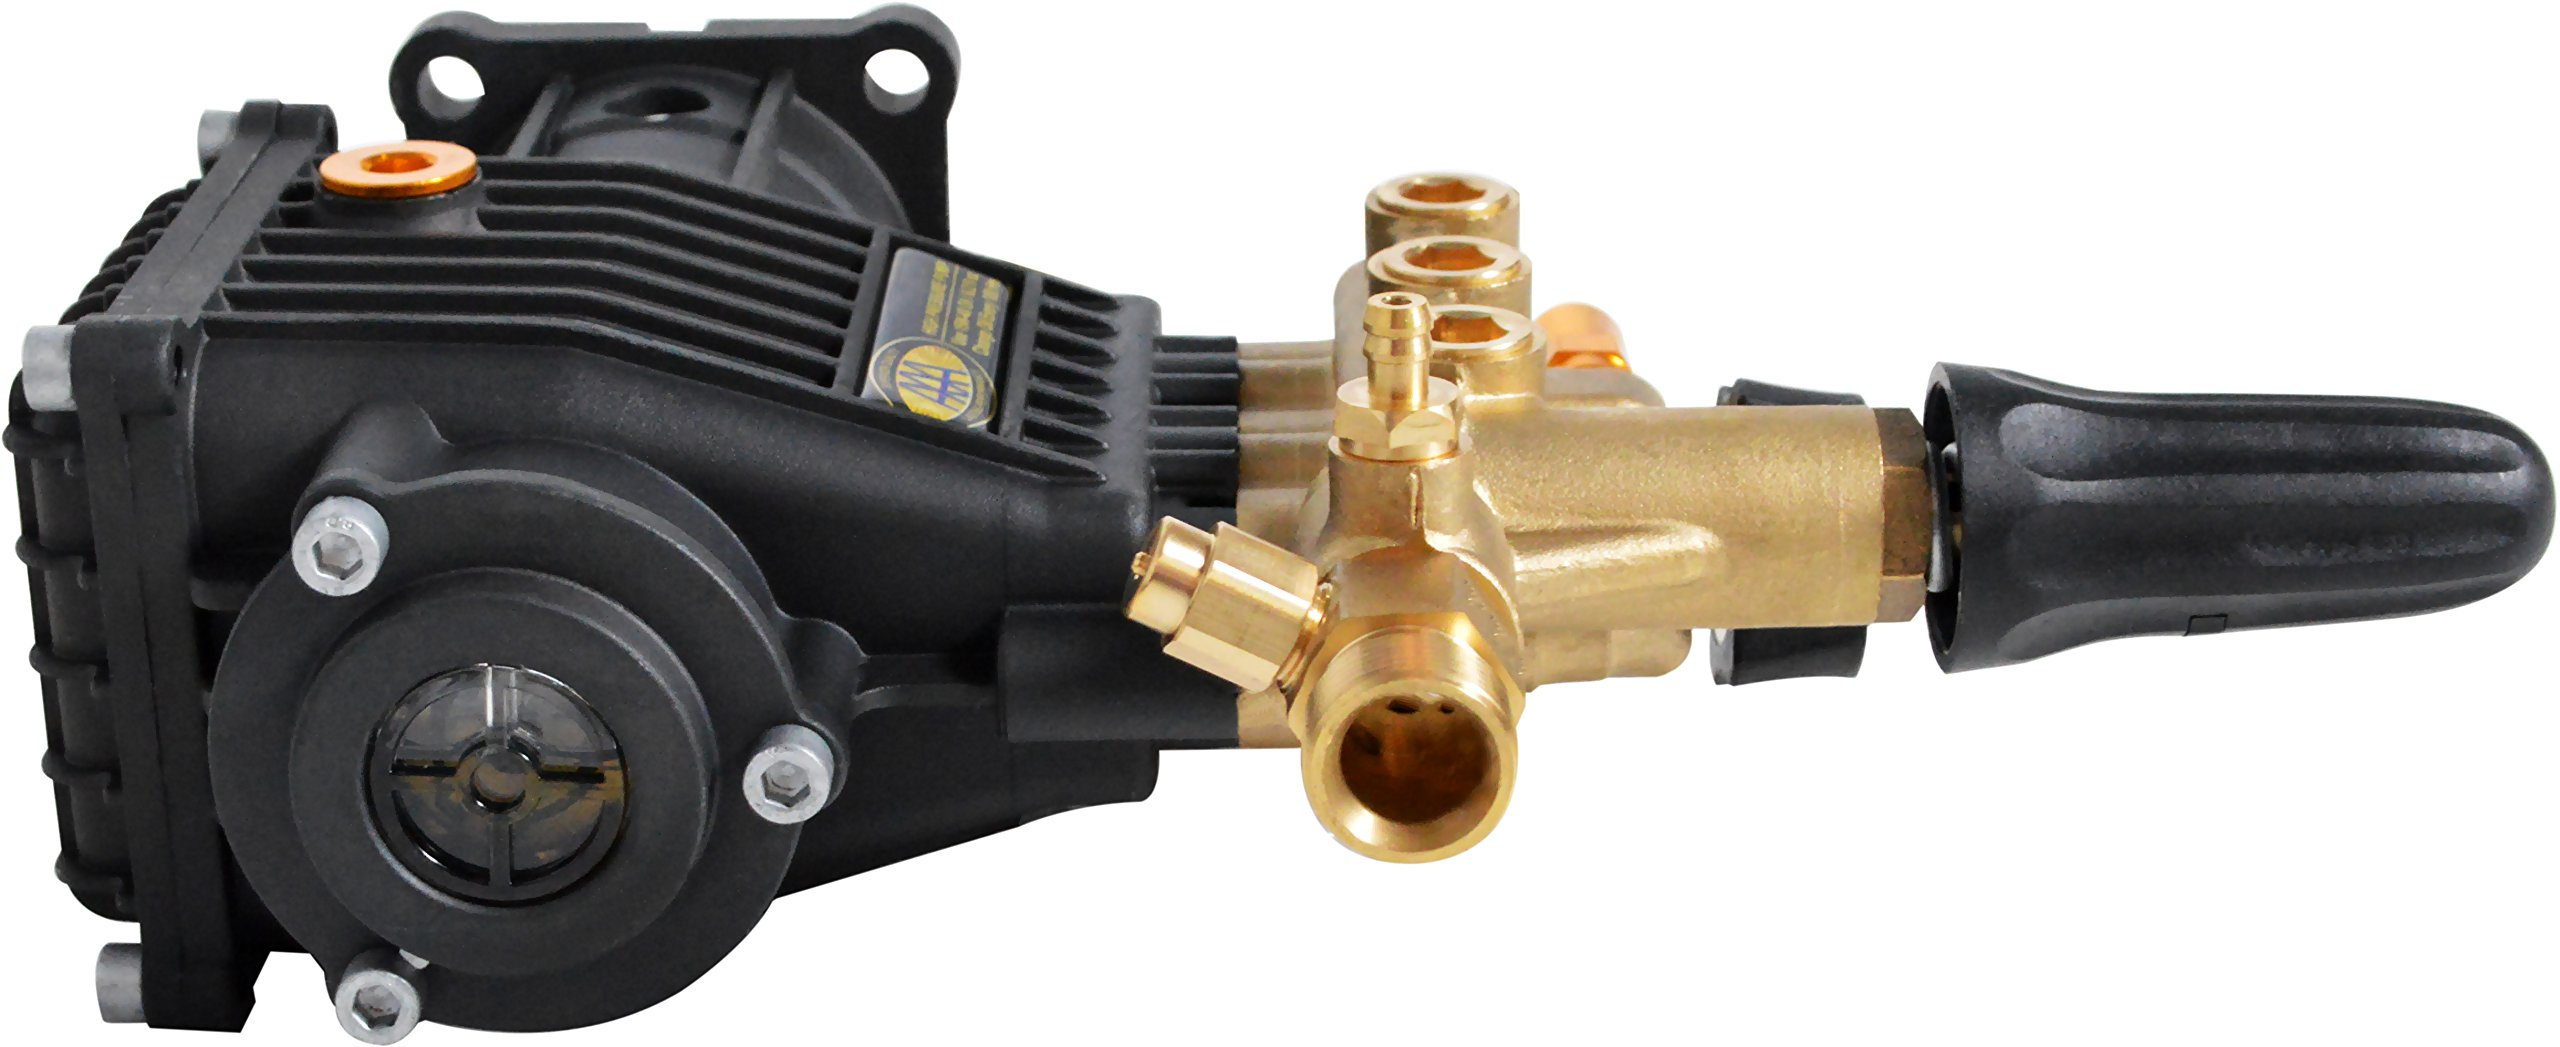 SIMPSON Cleaning 90037 Triplex Plunger Horizontal Pressure Washer Replacement Pump 8.7GA12 3400 PSI @ 2.5 GPM with Brass Head and PowerBoost Technology